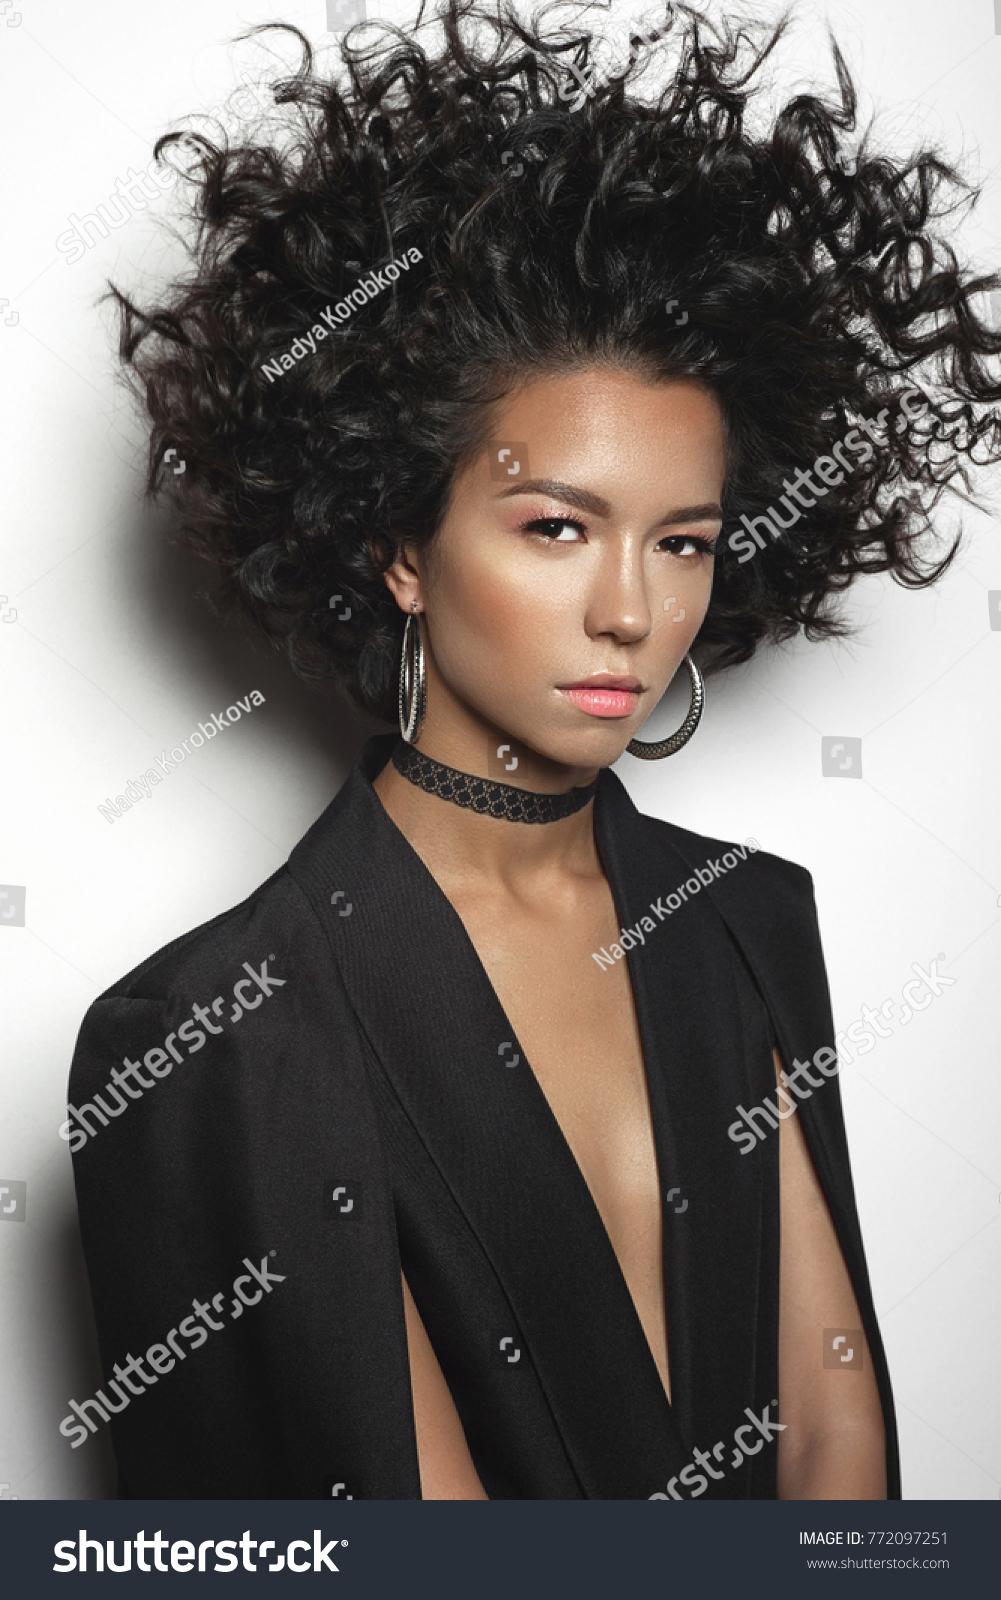 Fashion Studio Portrait Of Beautiful Woman With Afro Curls Hairstyle. Fashion  And Style. Beauty